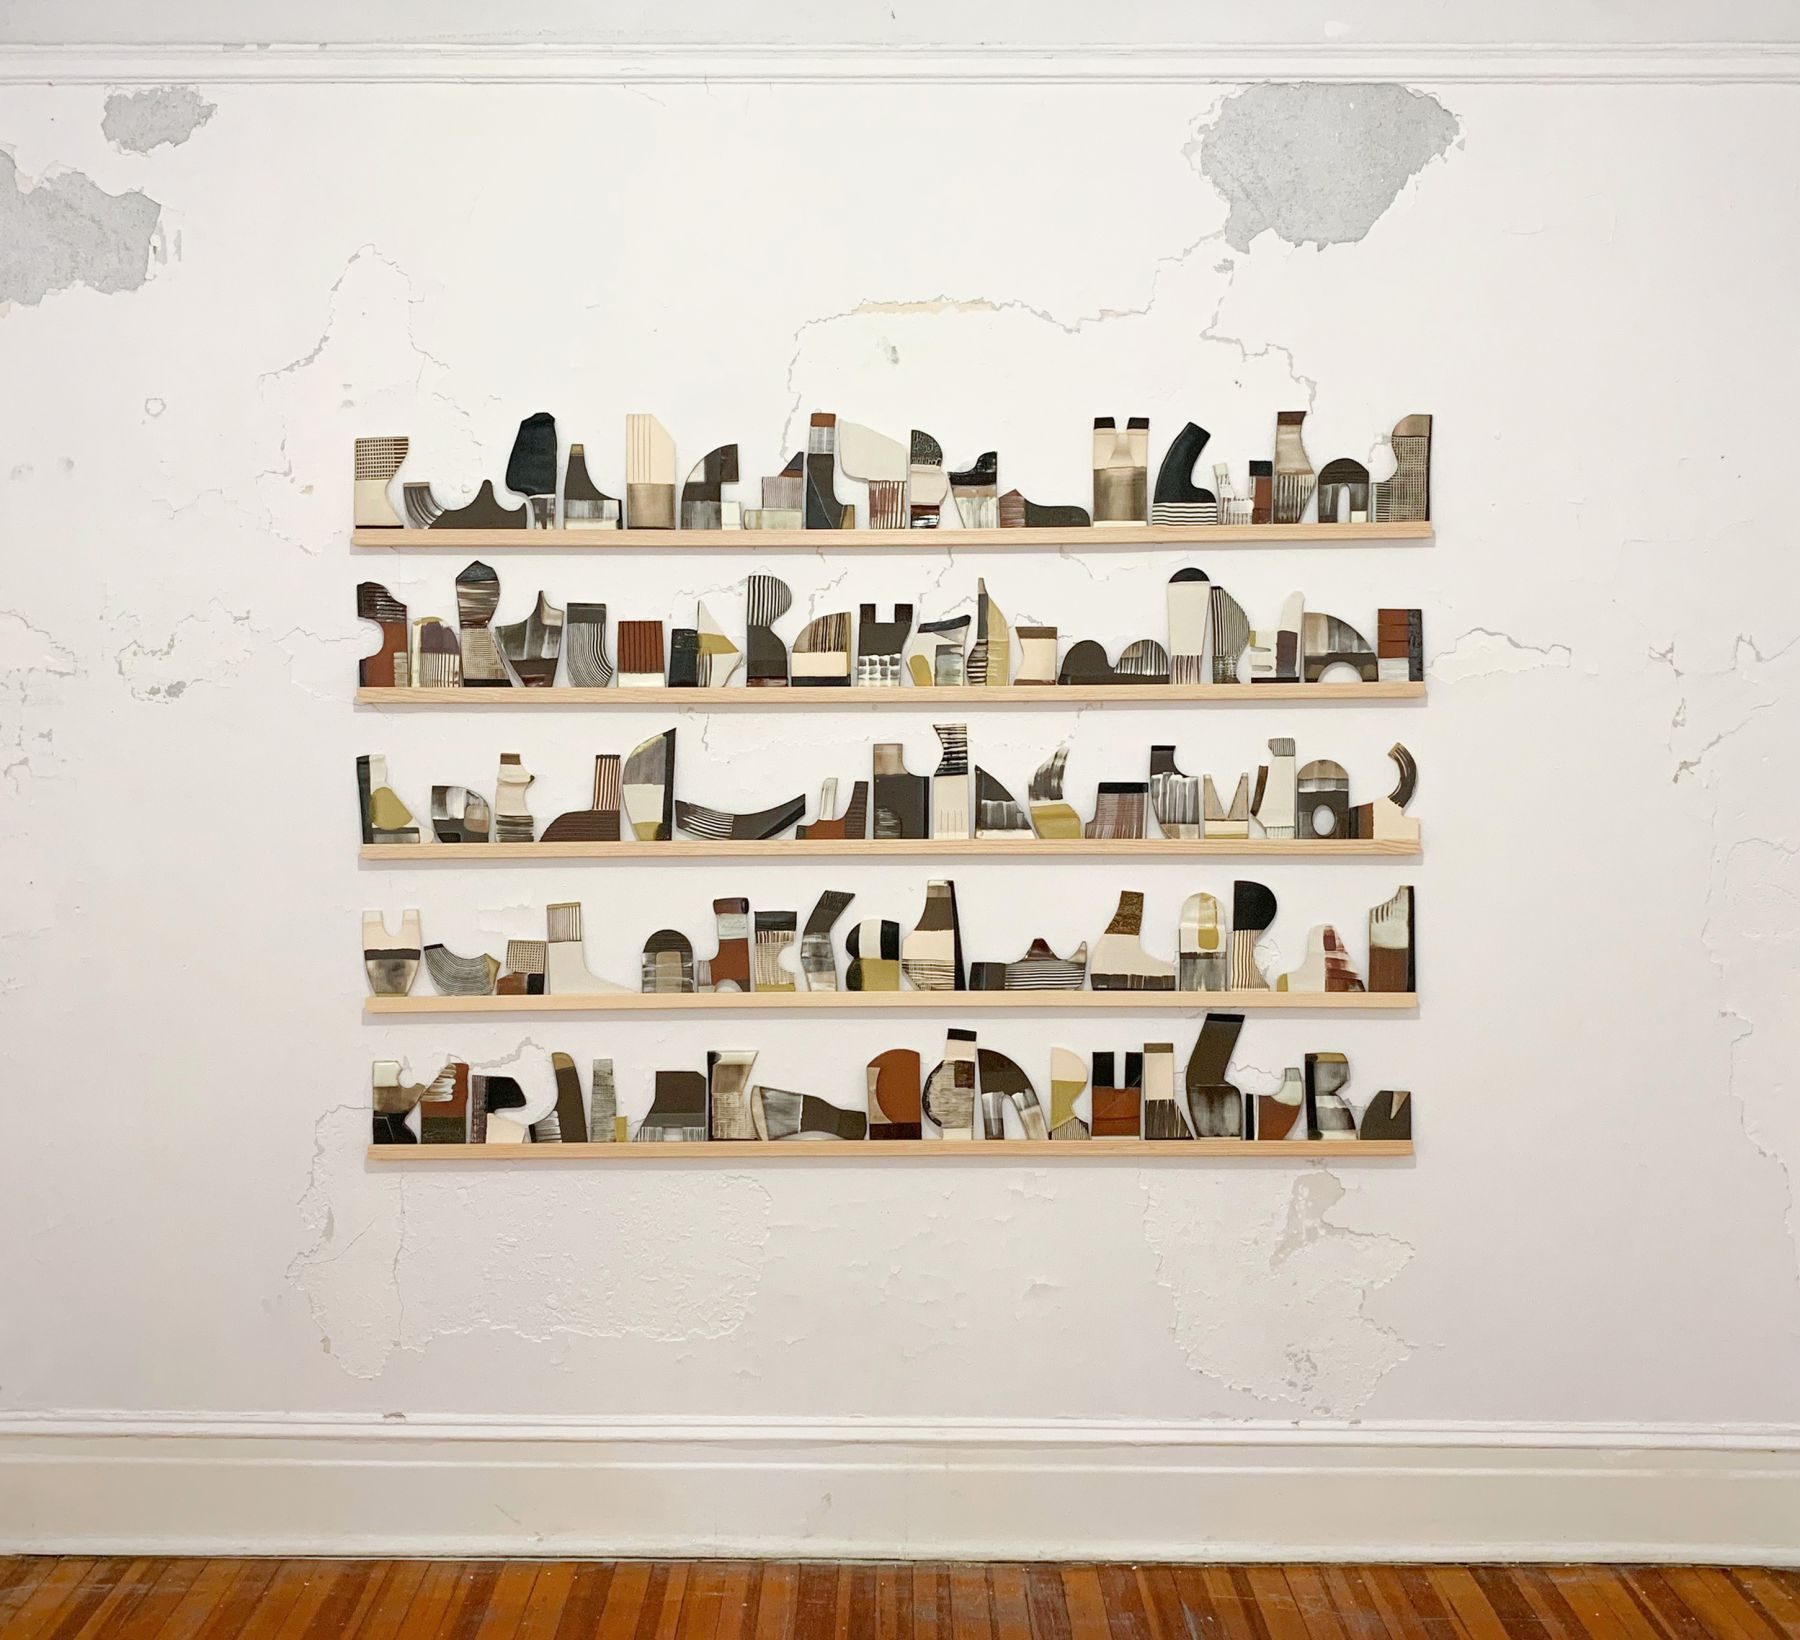 about 100 ceramic tiles made by katy fischer sit on 5 stacked thin wood shelves affixed to an old peeling wall.